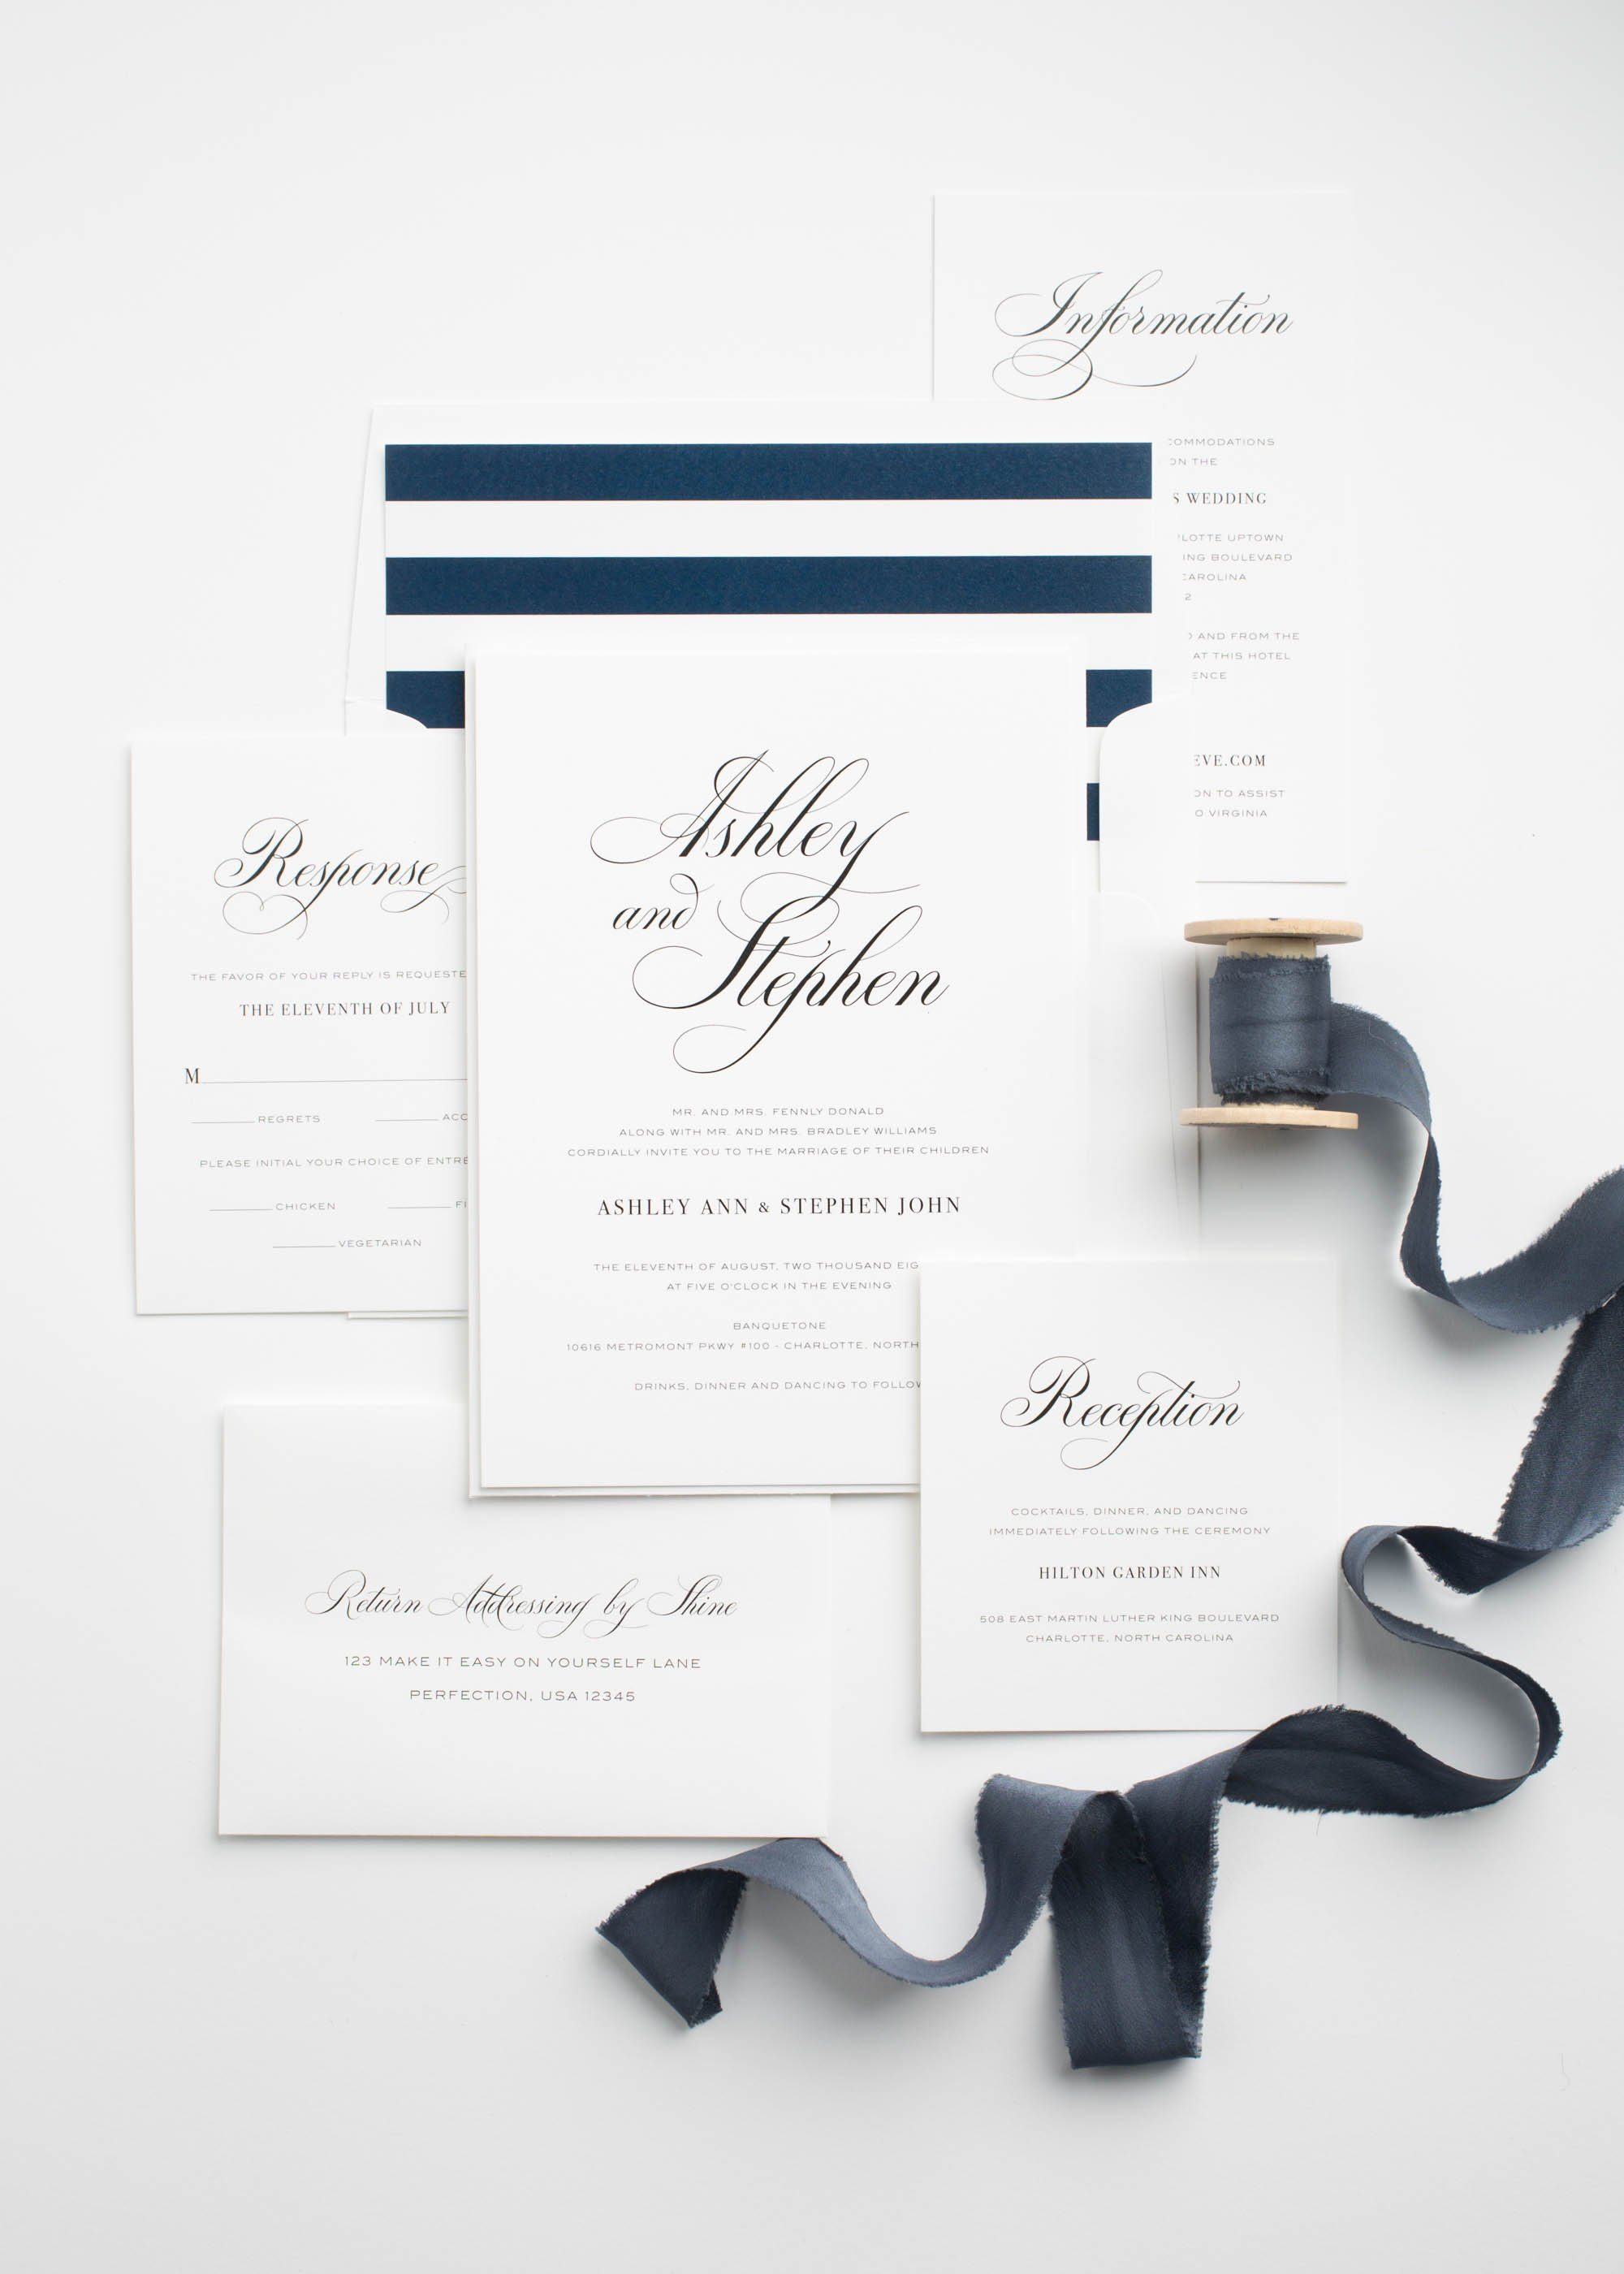 Simple and Elegant Wedding Invitations in Navy Blue with a Striped Envelope Liner